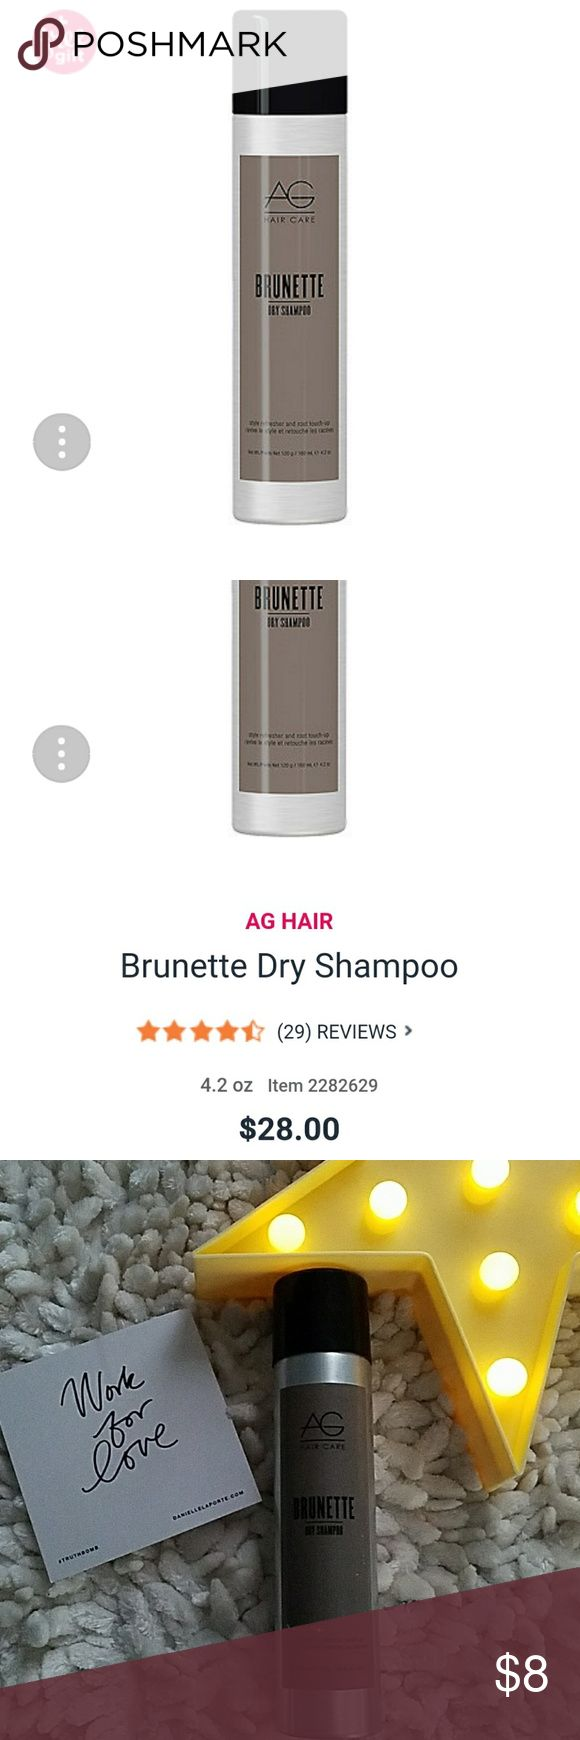 AG Brunettes💞 dry shampoo💞 sprayed ONE TIME💞 AG💞 Brunettes💞 dry shampoo💞 I sprayed this ONE TIME💞 the can is FULL💞 I went to a blonde pixie😂😂😂😂 This stuff is expensive, so here's a deal for those who use this💞 AG Other